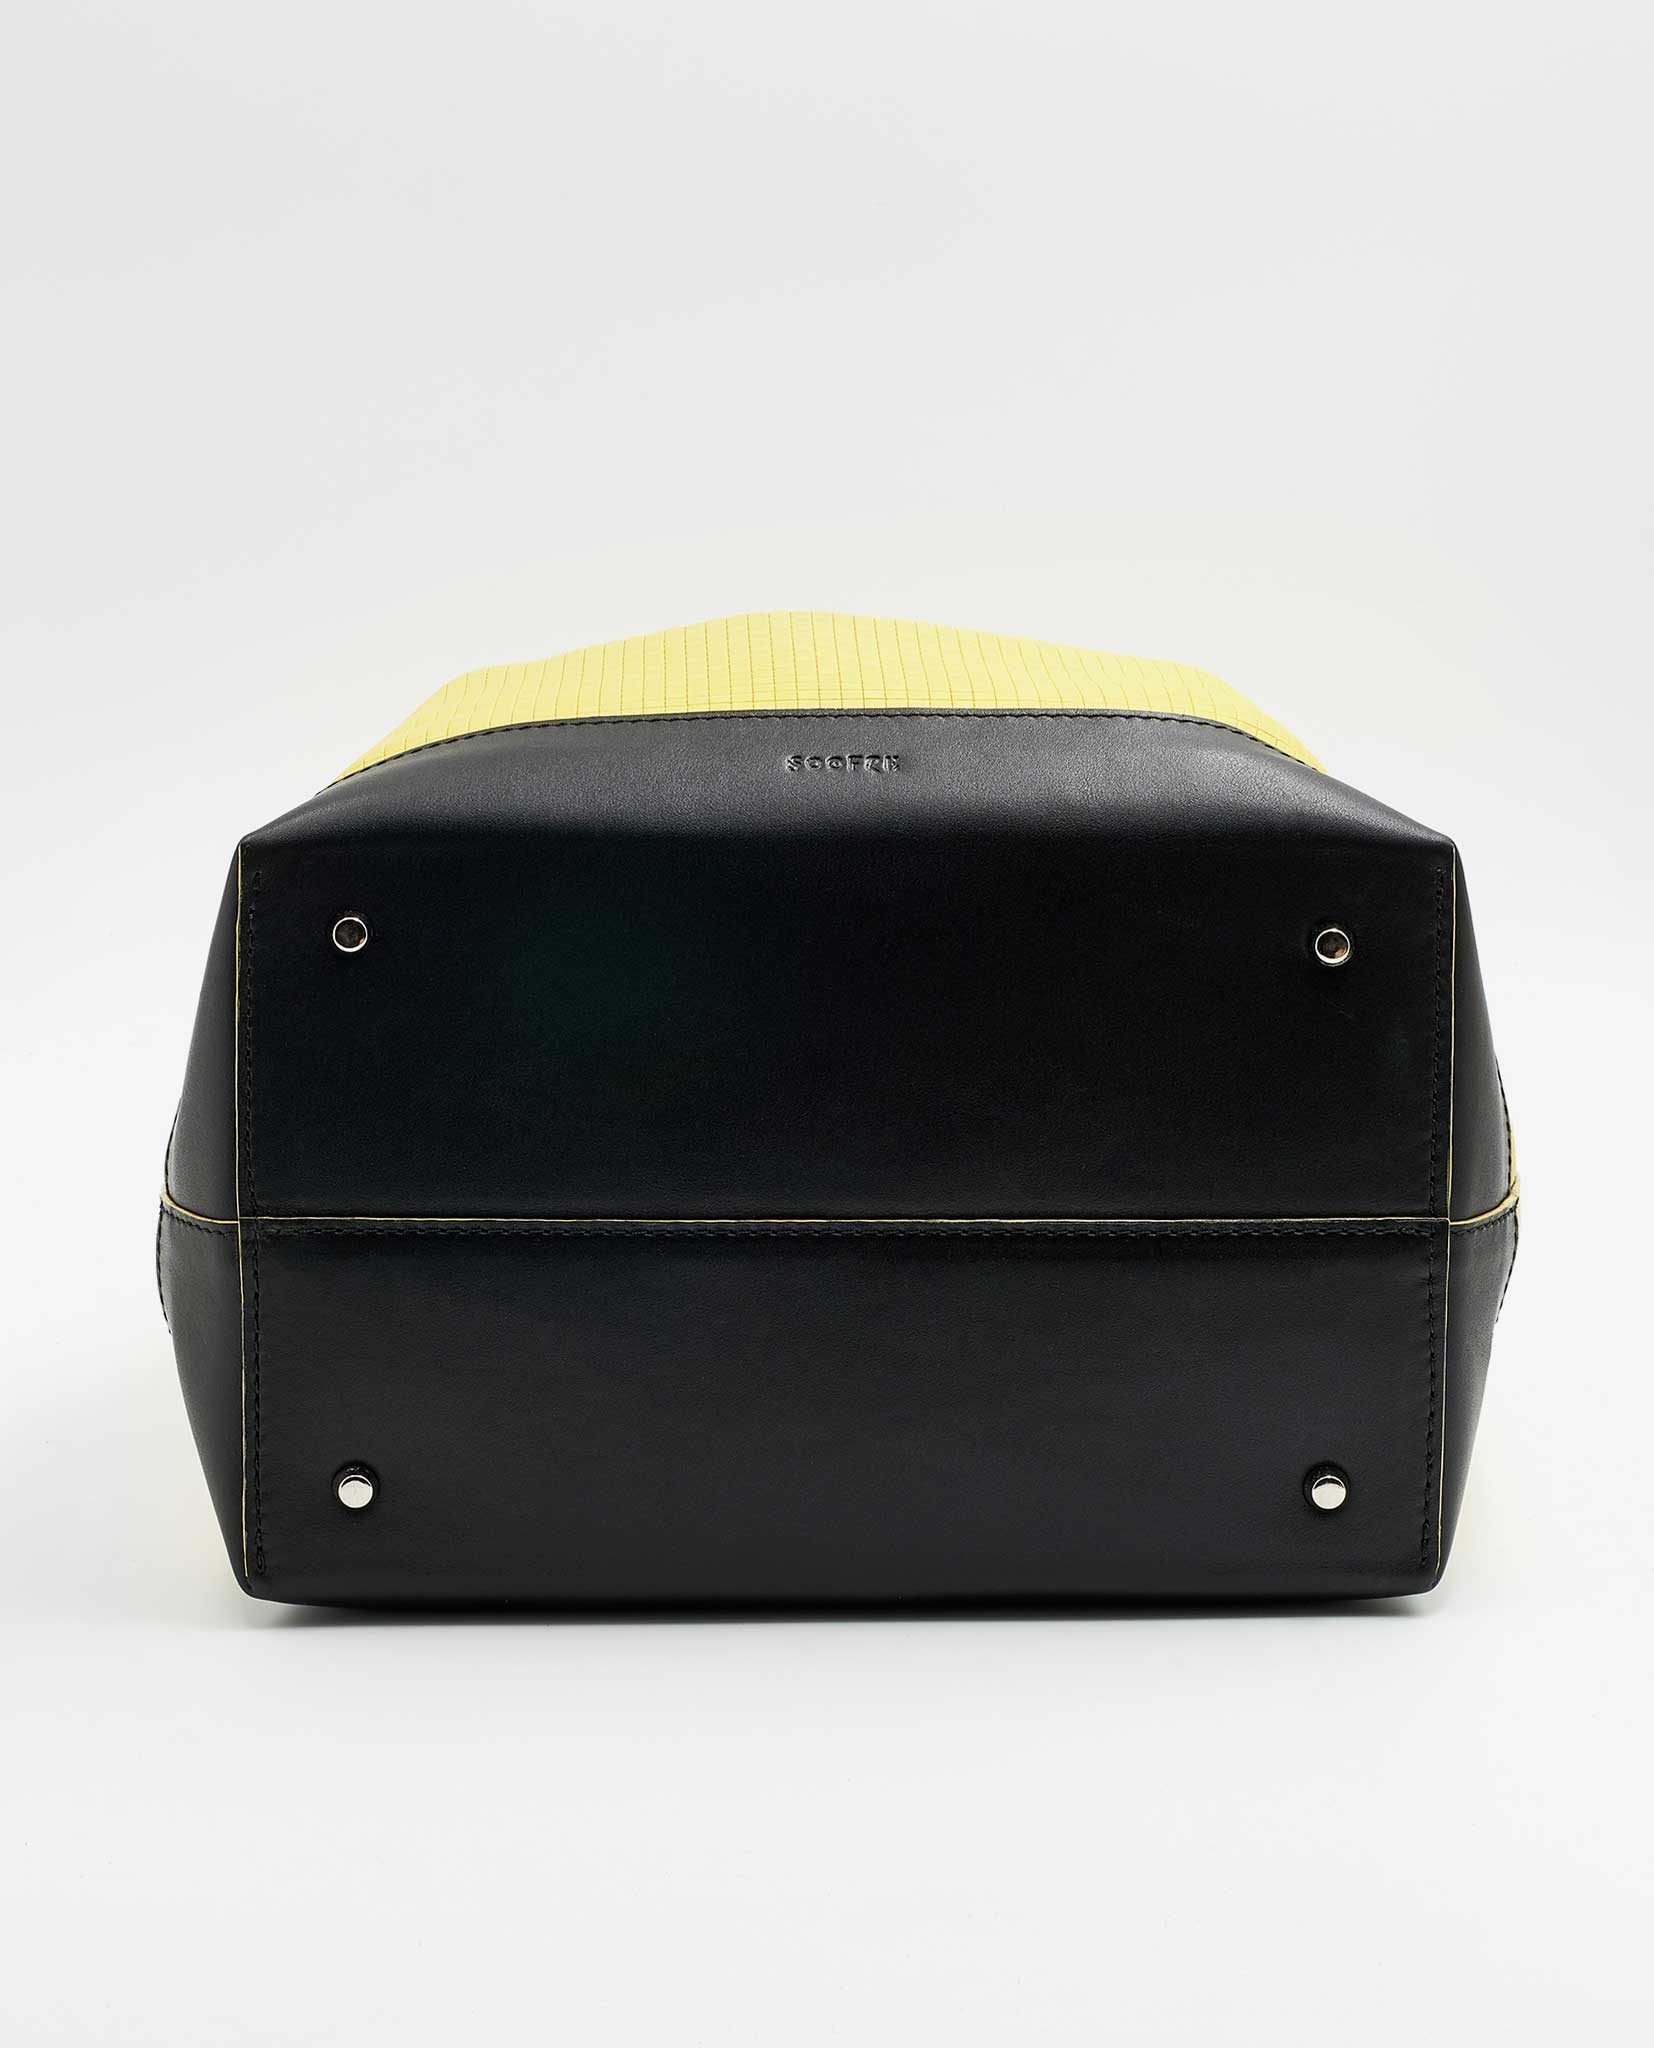 SOOFRE-Berlin-unique-Bucket-Bag-squared-yellow-black-BOTTOM